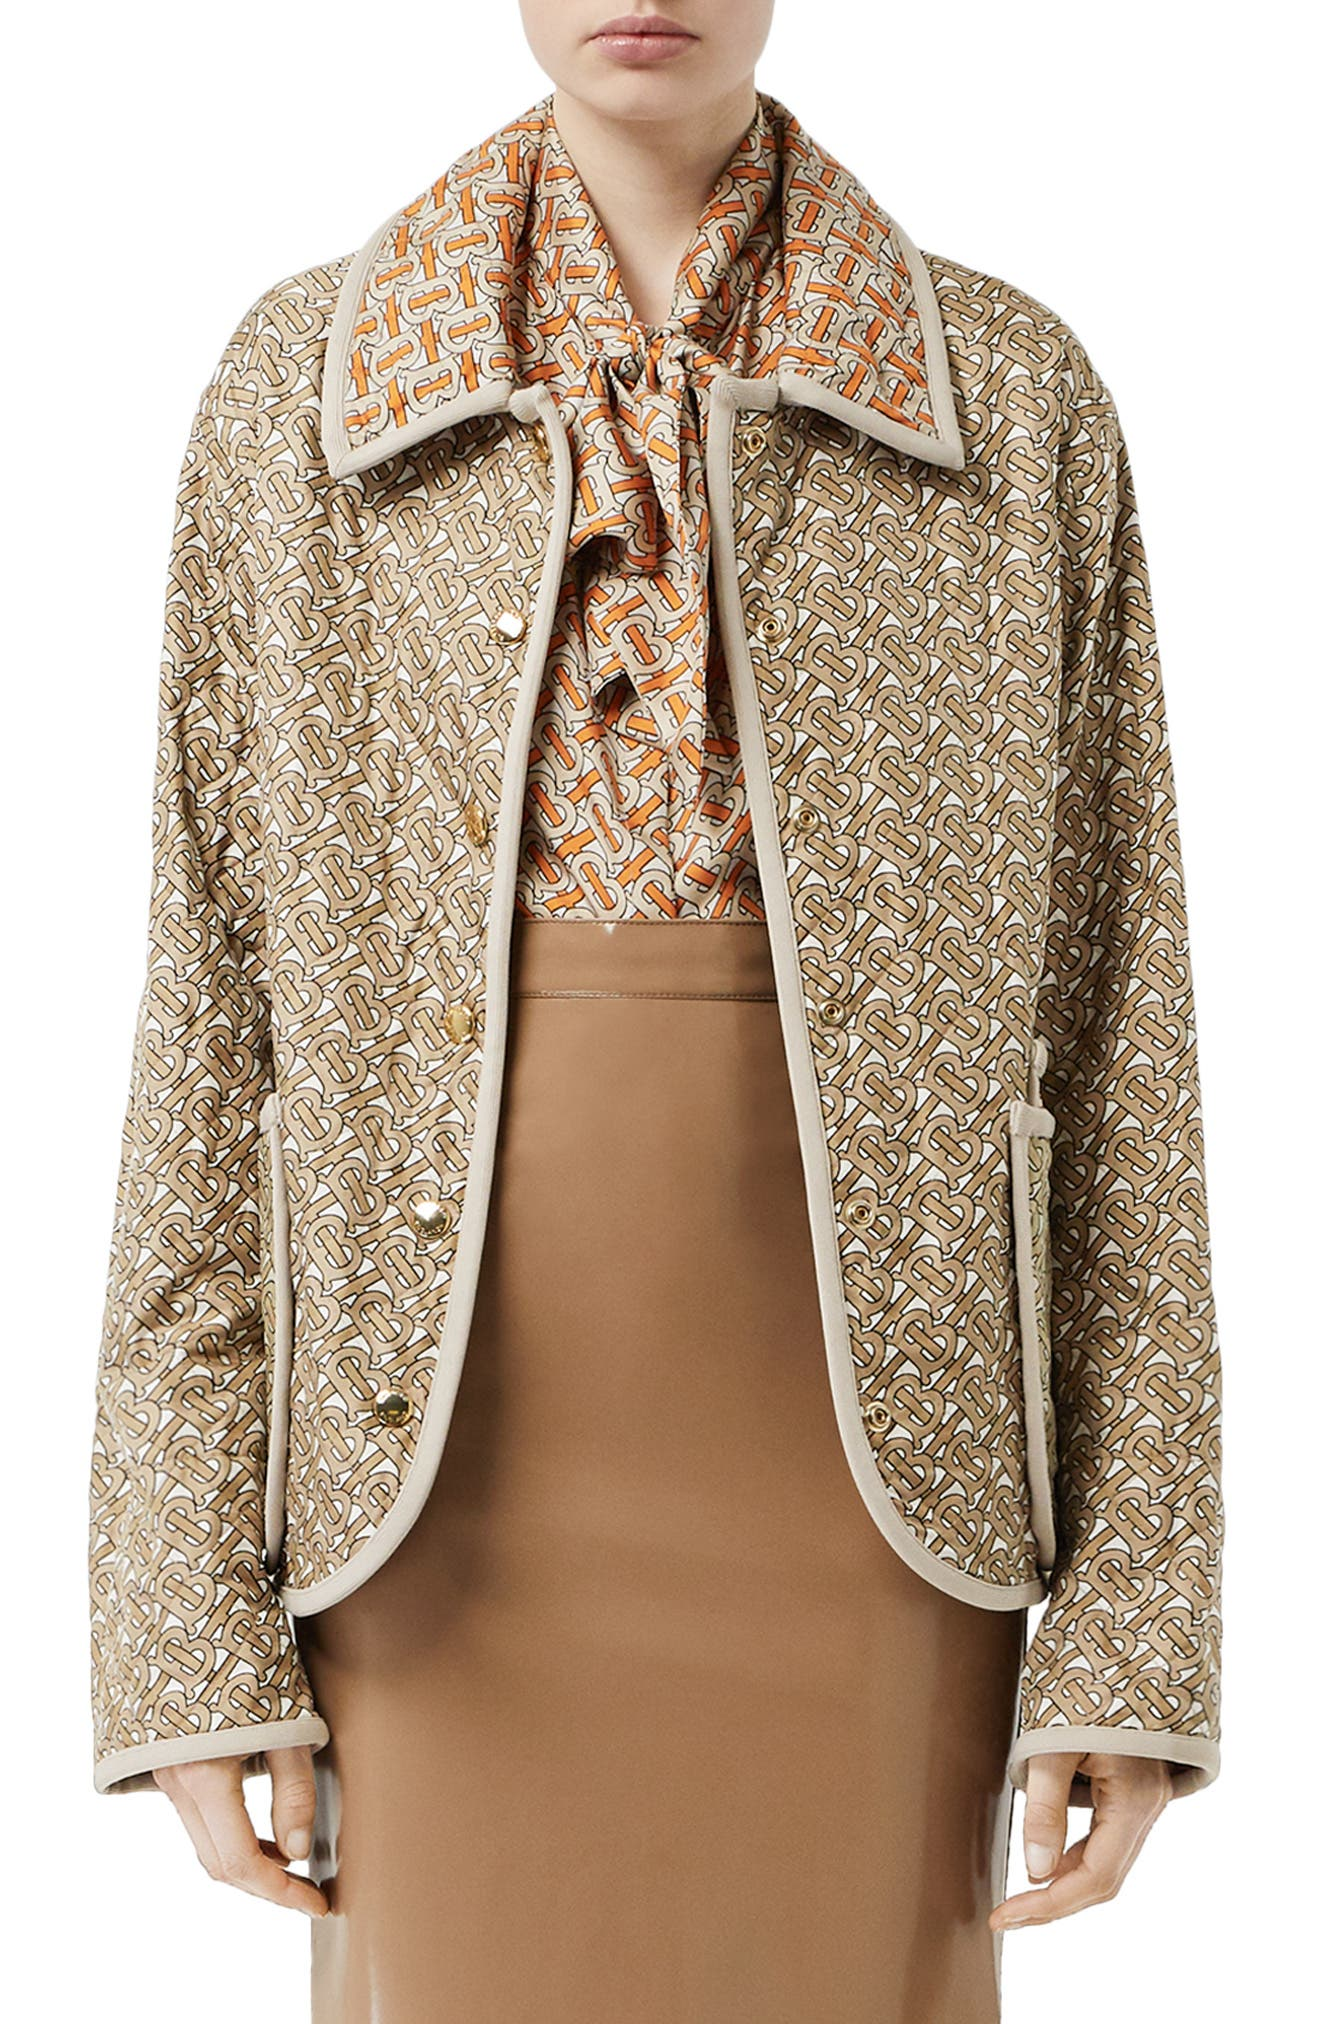 BURBERRY, Monogram Logo Print Quilted Silk Jacket, Main thumbnail 1, color, ARCHIVE BEIGE